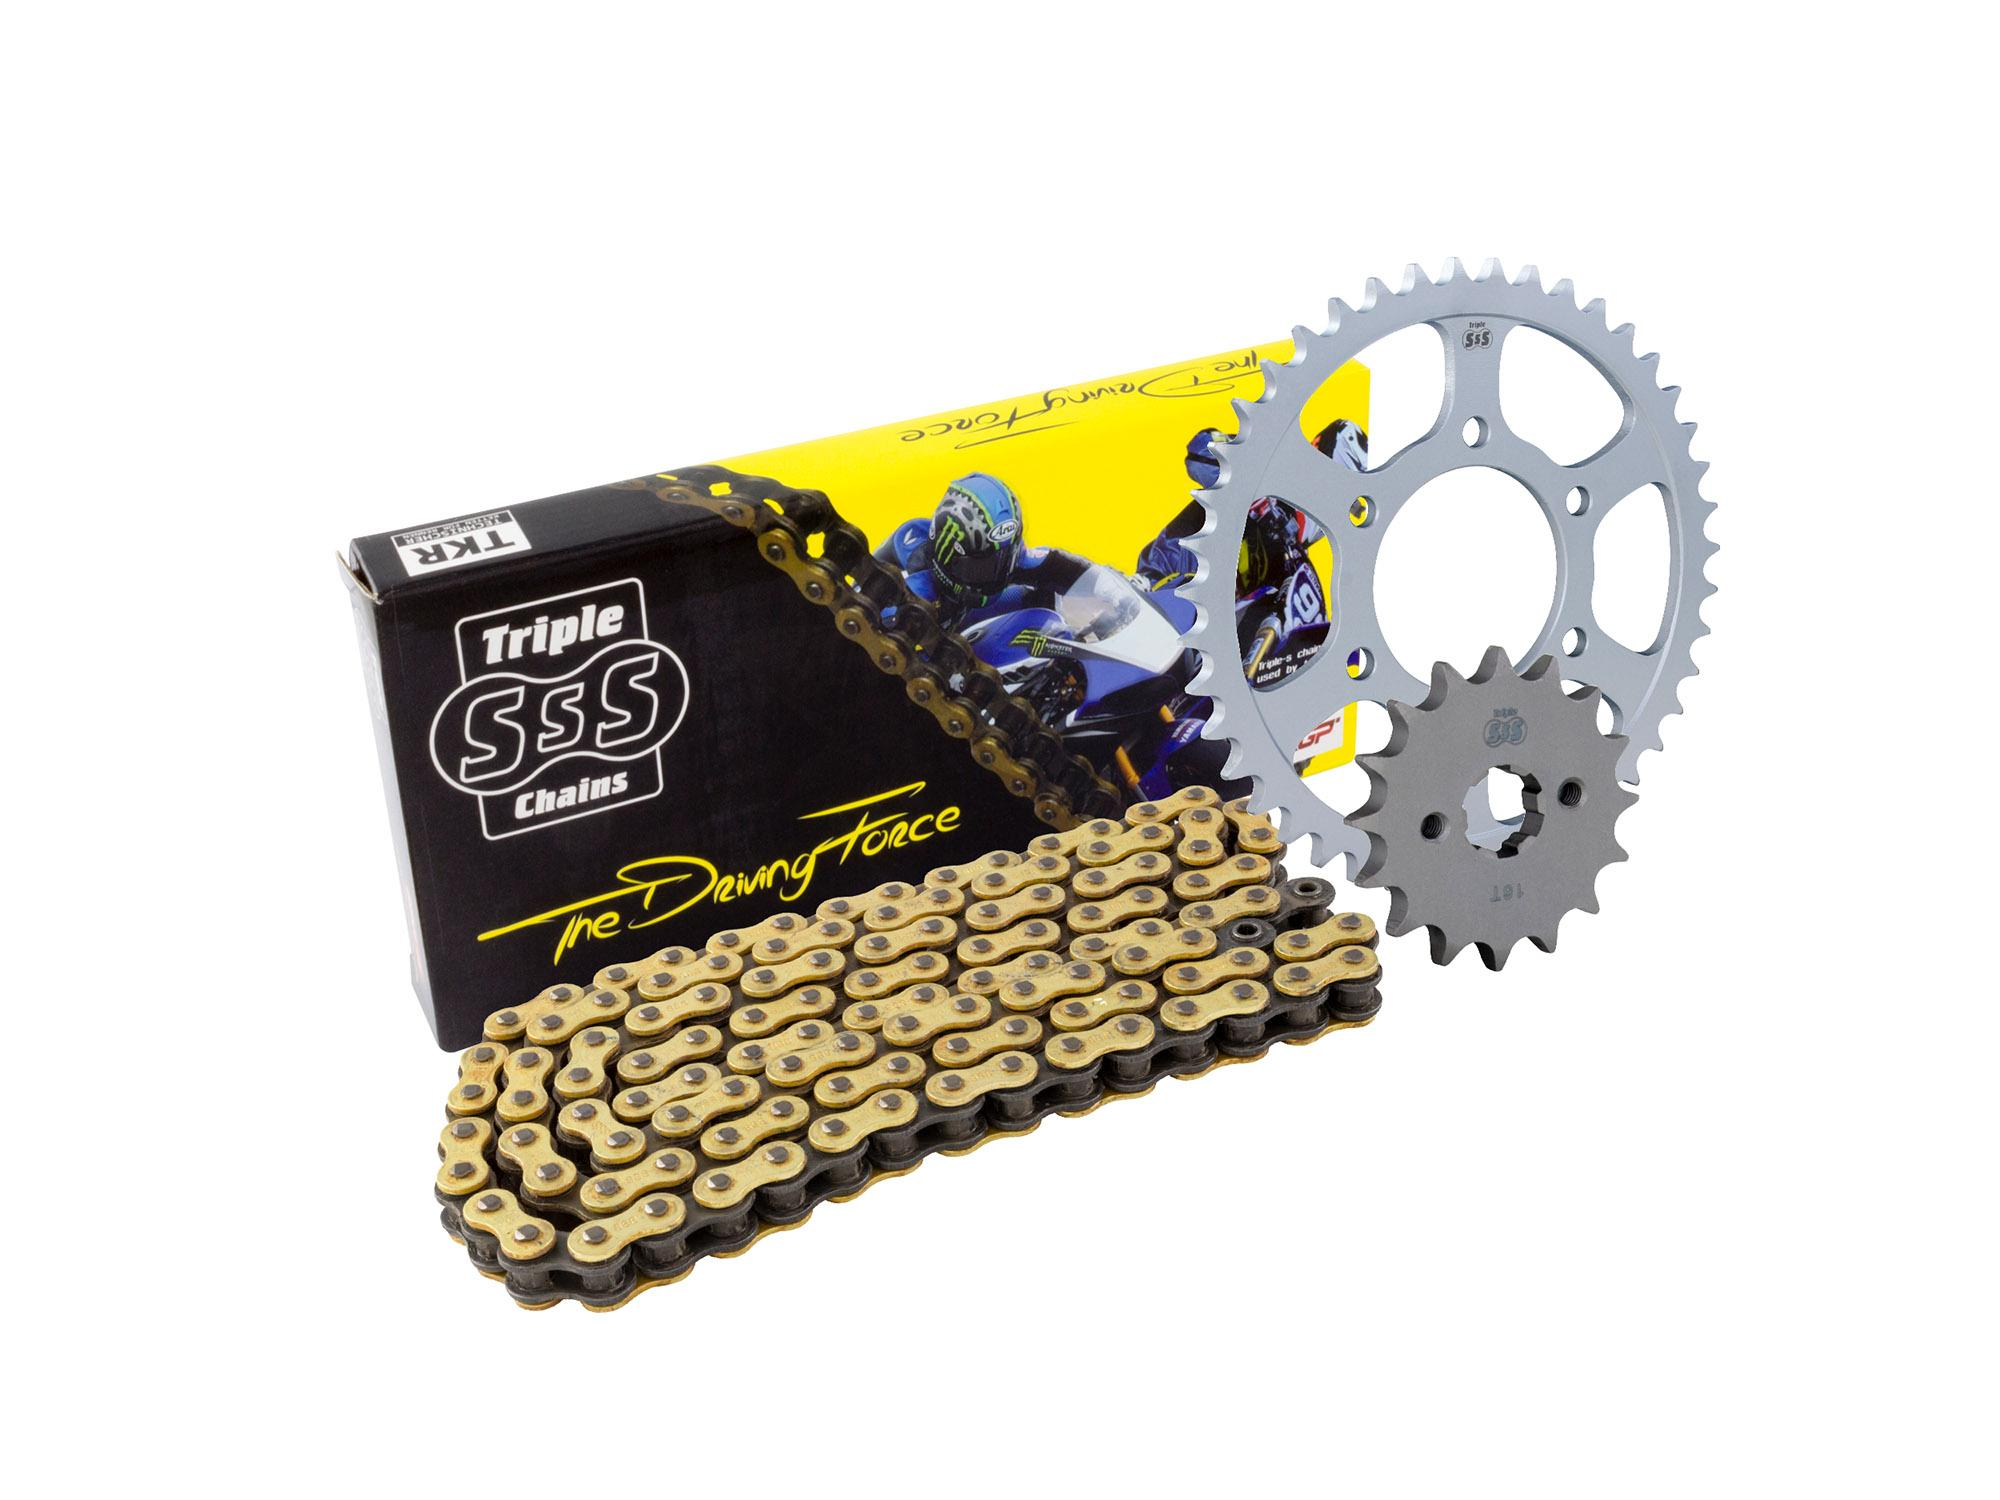 Yamaha YZF-R3 15>, MT-03 16> Chain & Sprocket Kit: 14T Front, 43T Rear, HD O-Ring Gold Chain 520H 112 Link